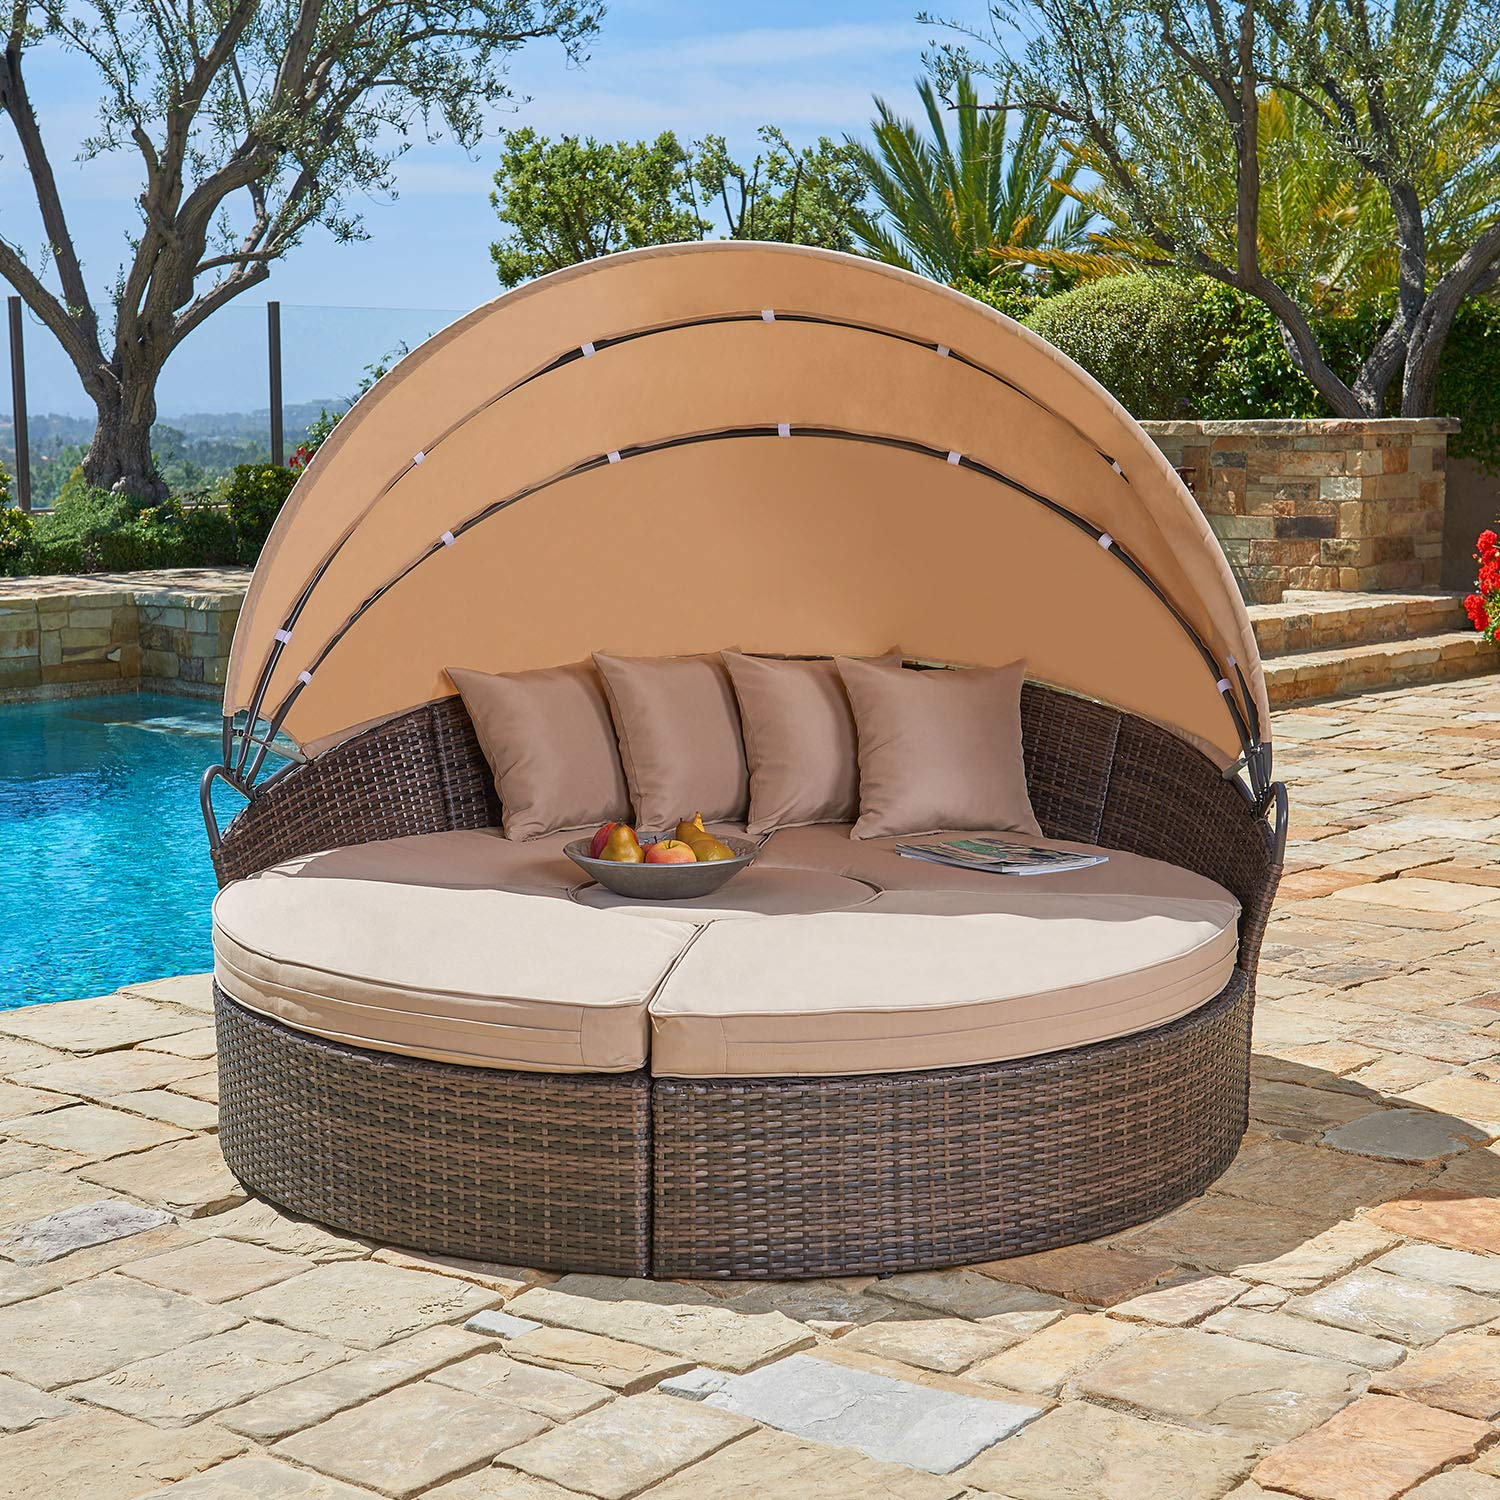 SUNCROWN Furniture Retractable Clamshell All Weather